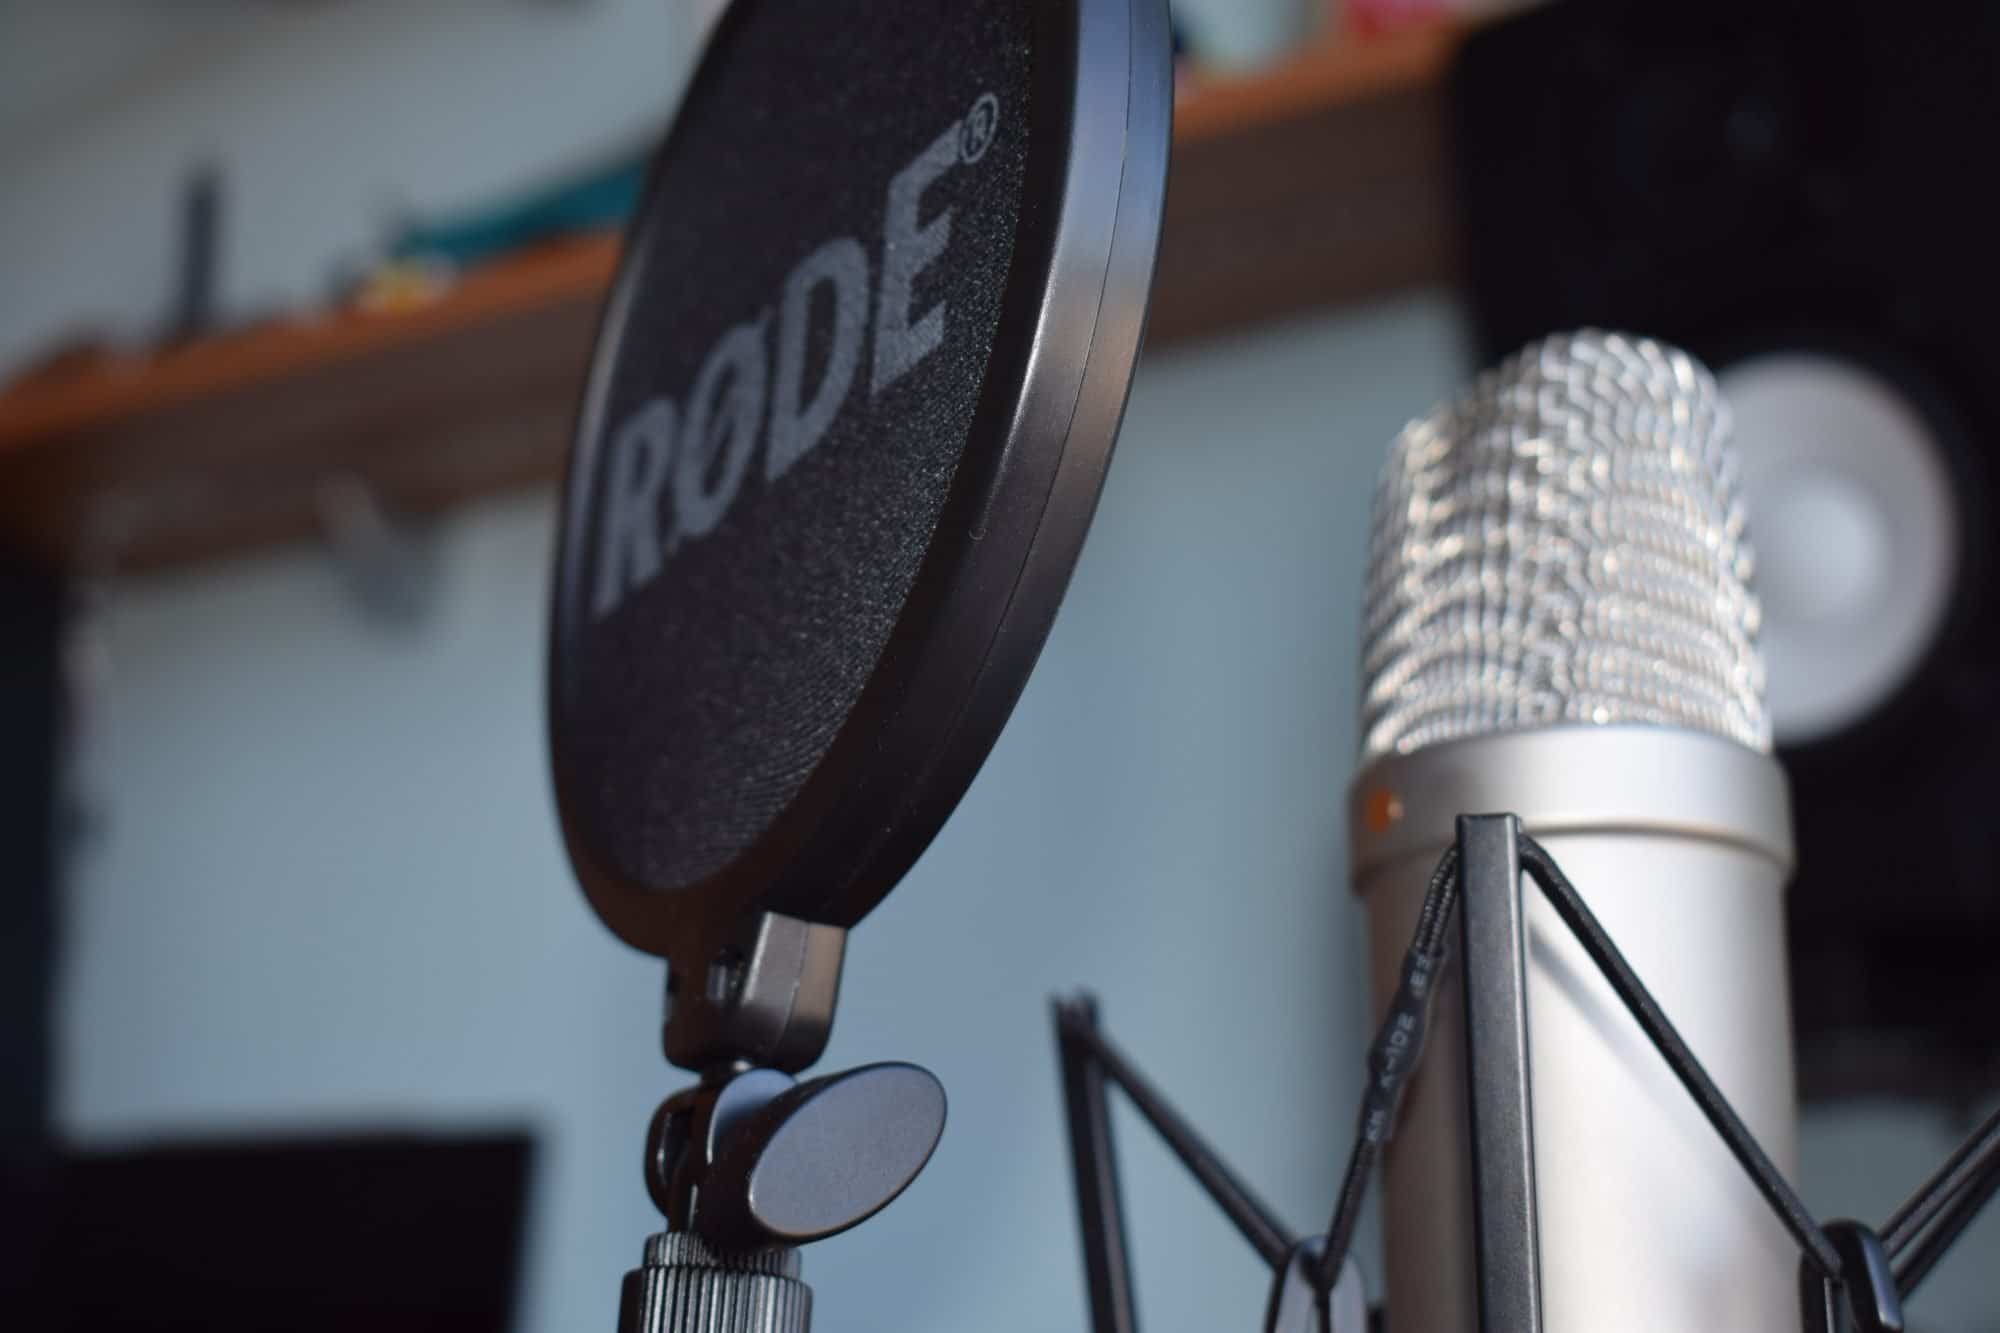 Rode NT1a on blur background in a croatian voiceover studio